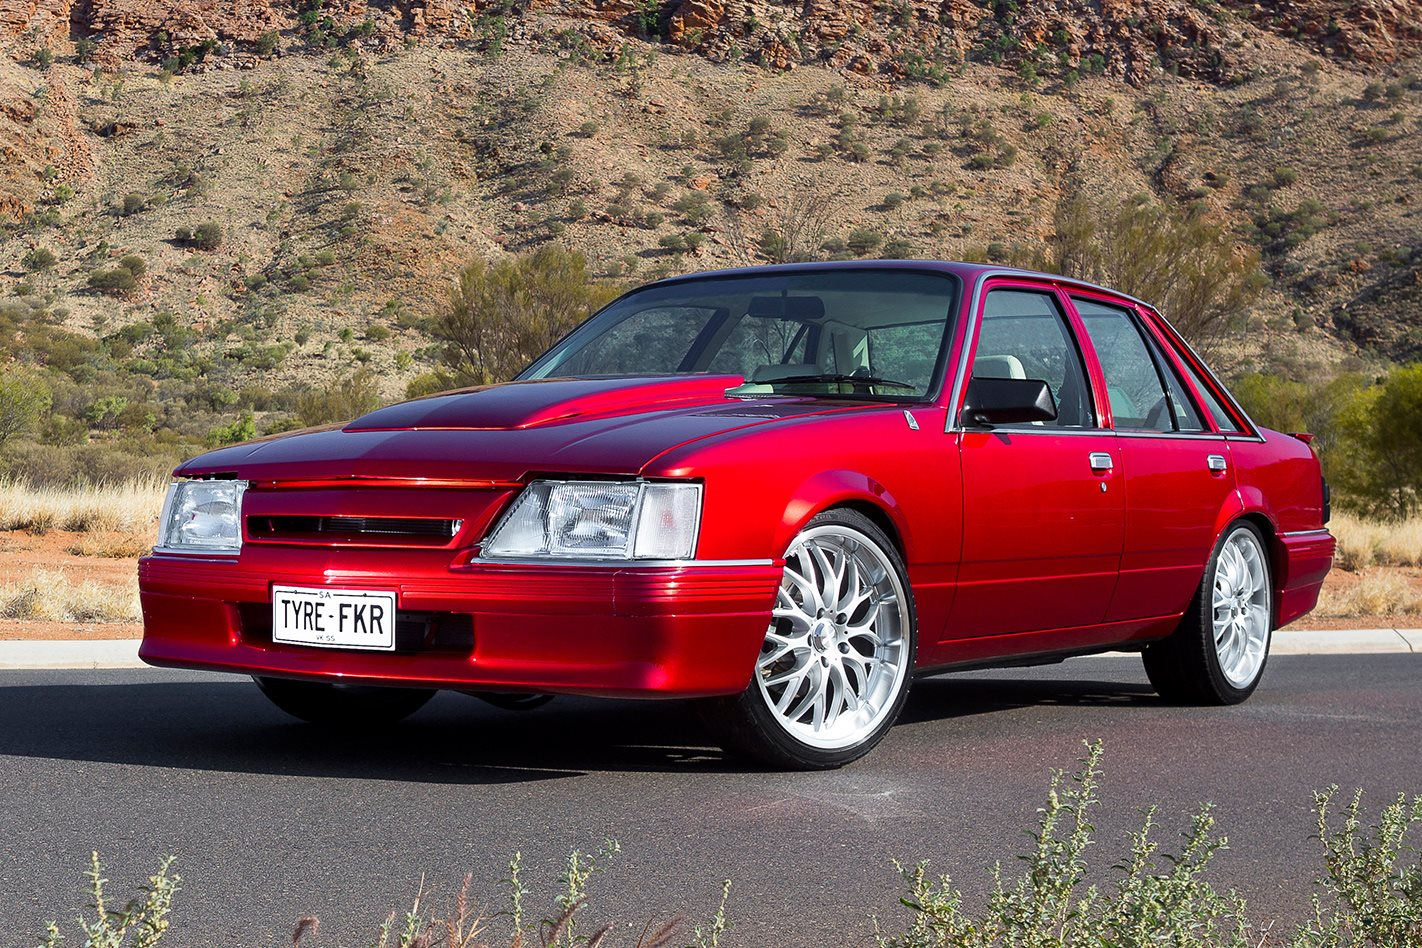 1985 Holden Vk Commodore With Hdt Dna And Nitrous V8